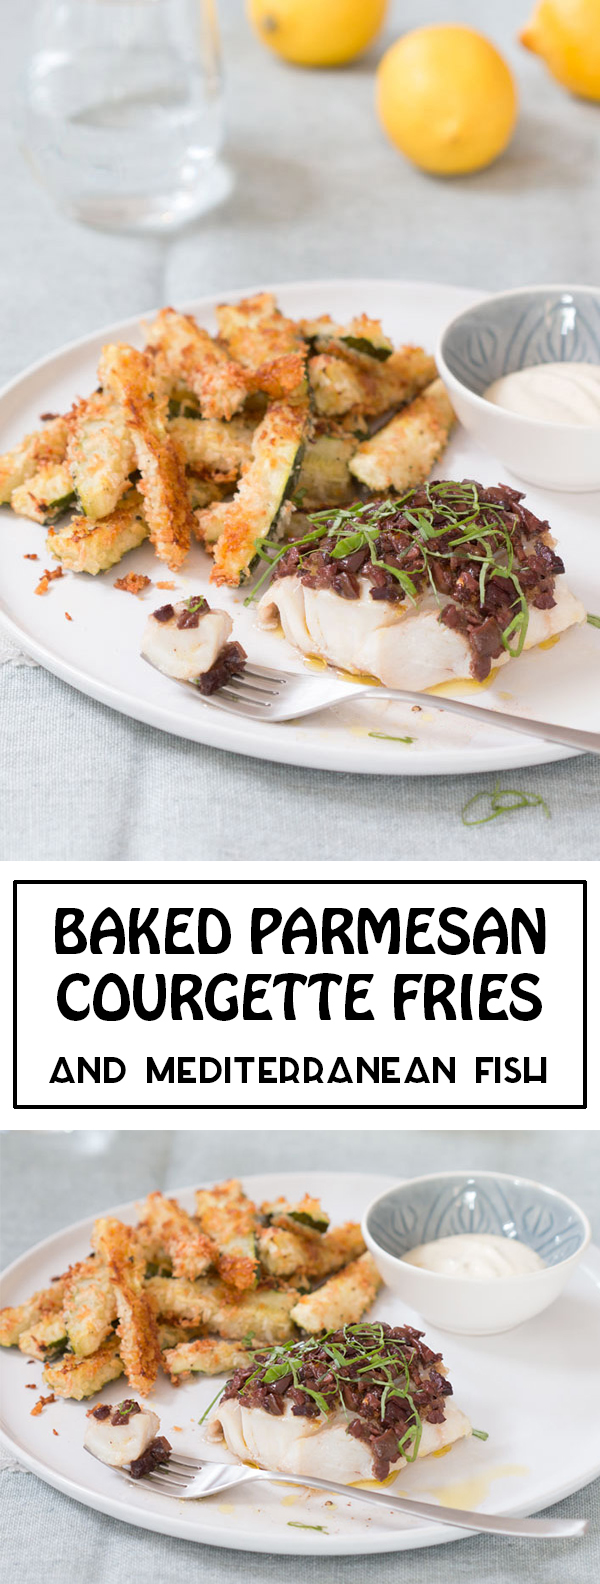 courgette_fries_baked_white_fish_pinterest